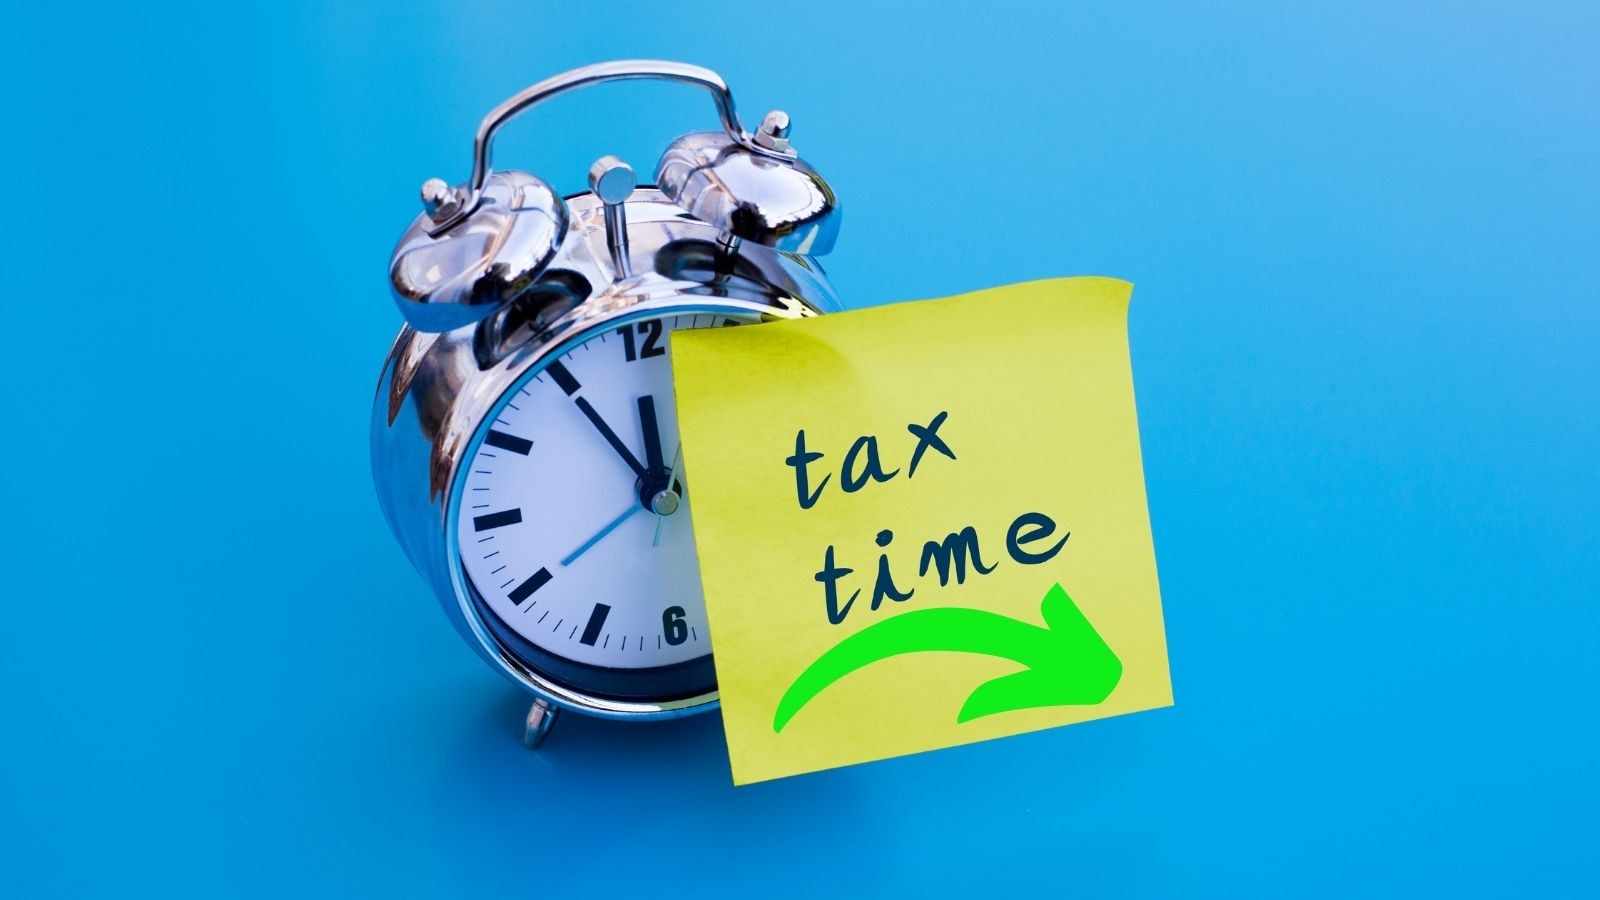 small businesses ready for taxes and deadlines